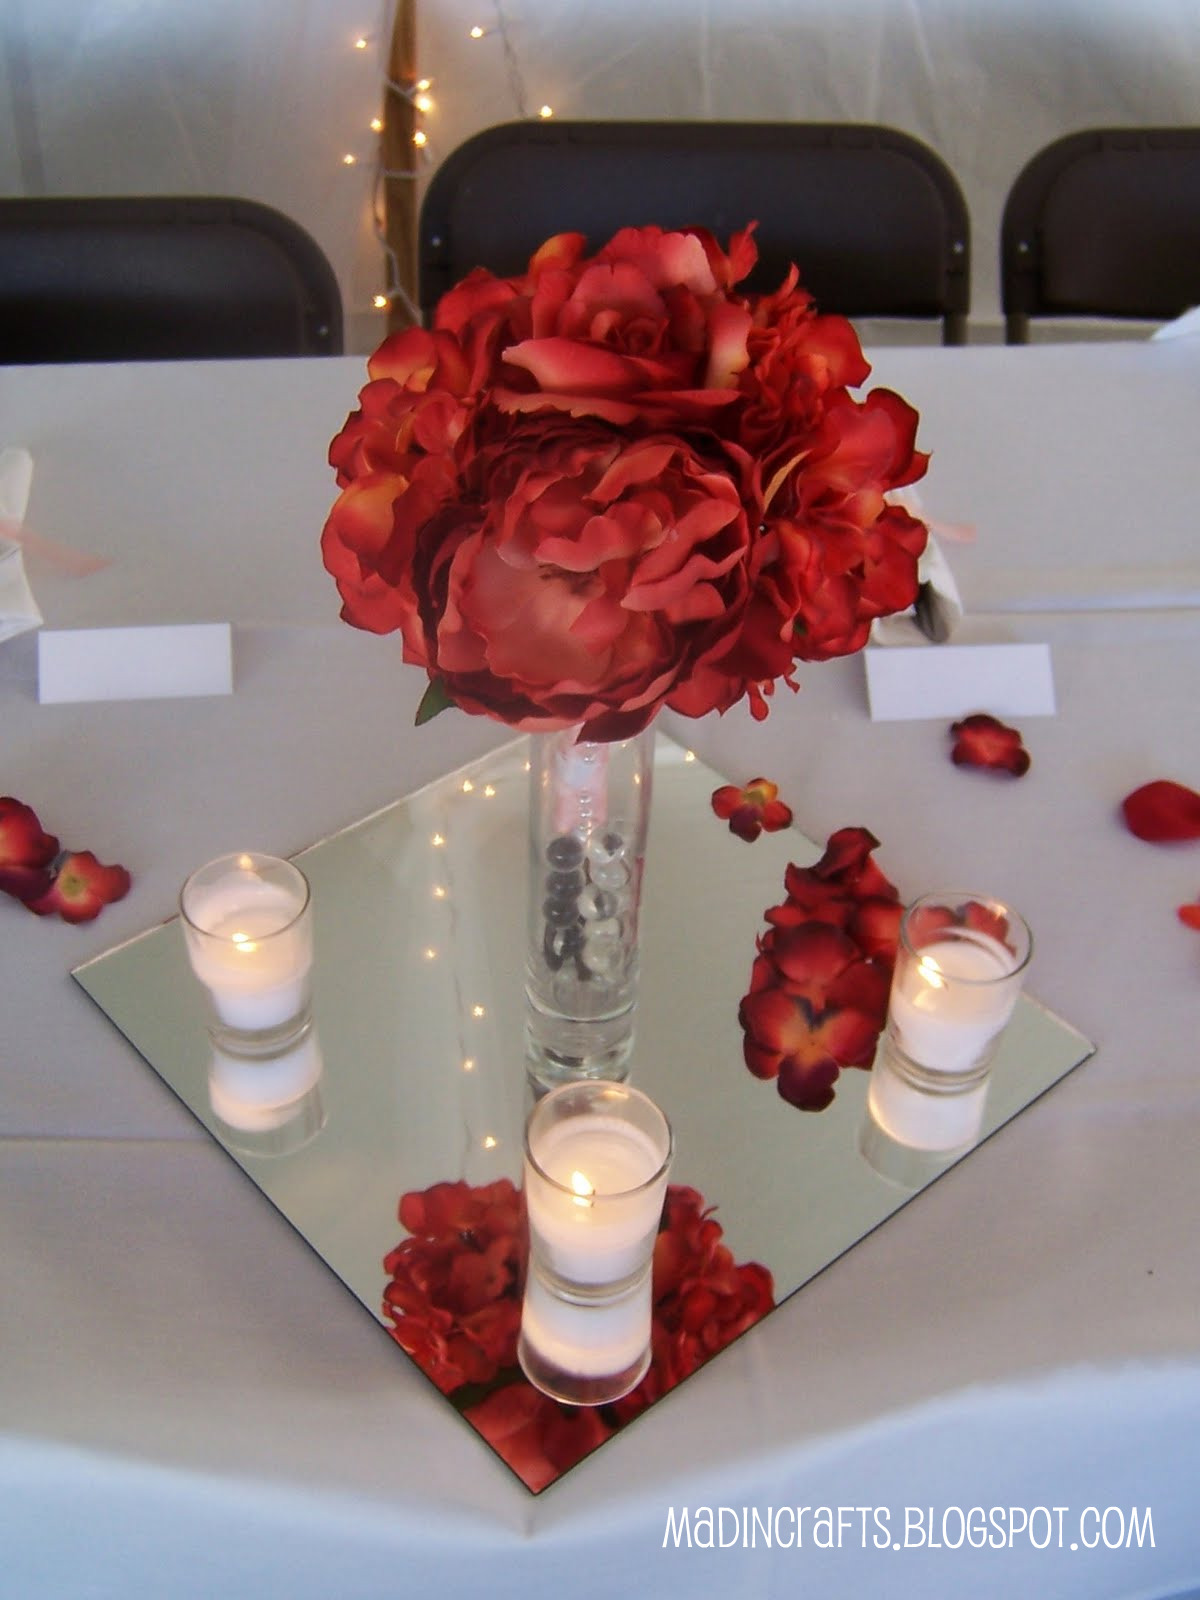 Wedding crafts an inexpensive reception mad in crafts reviewsmspy